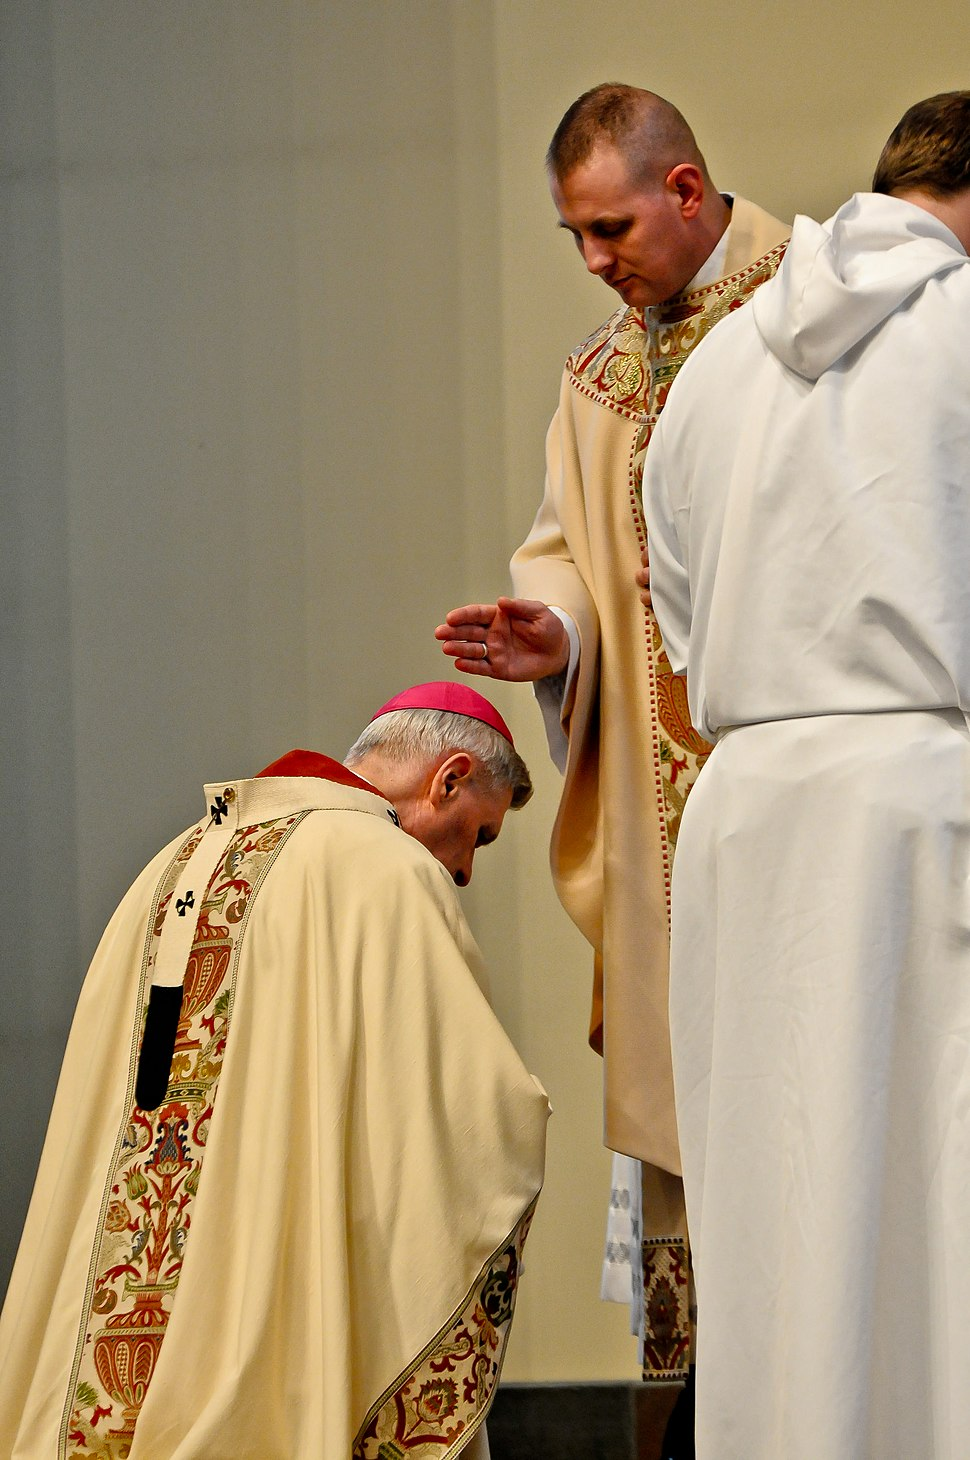 Army Chaplain joins priesthood 130307-A-ZD229-457